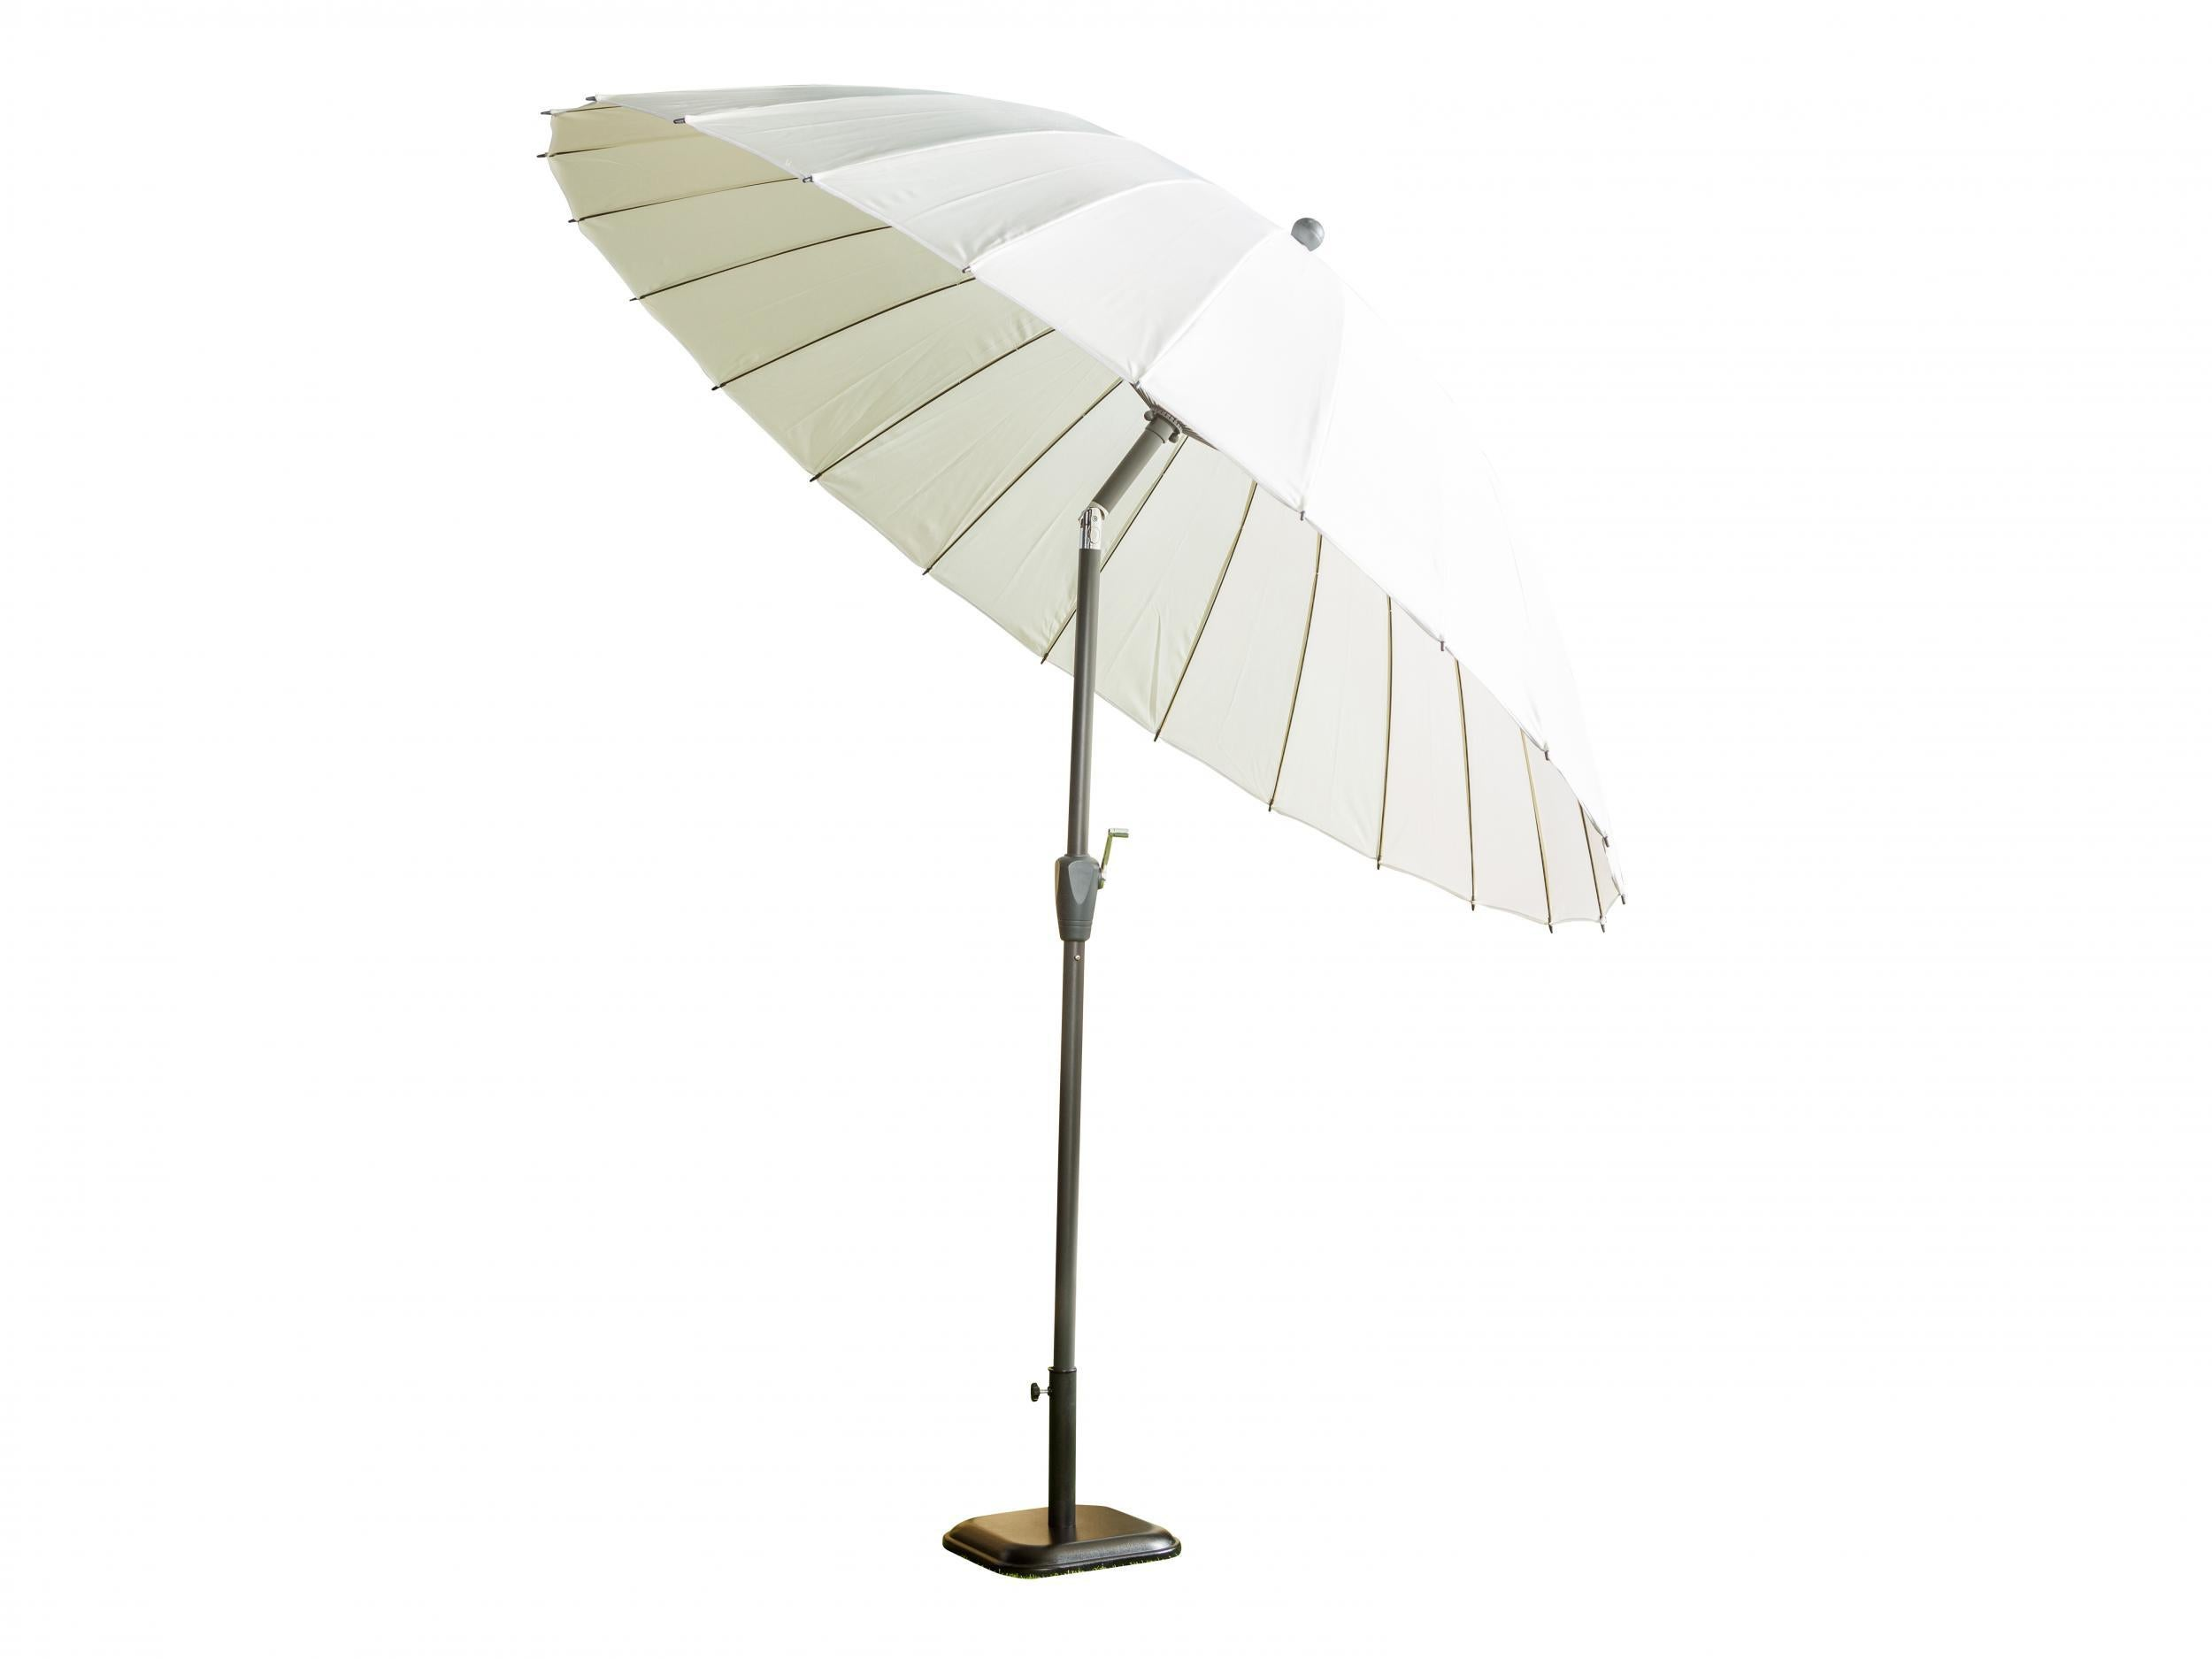 Best garden parasol: Choose from models that are adjustable, stylish